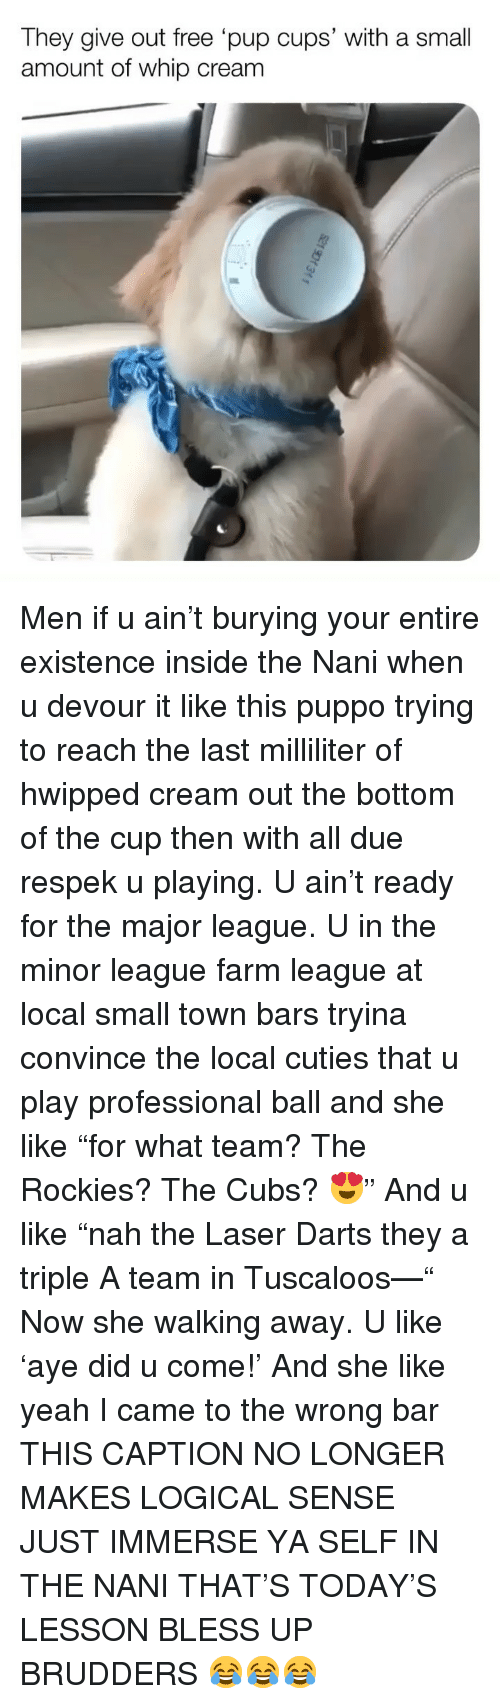 "Bless Up, Memes, and Whip: They give out free pup cups' with a small  amount of whip cream Men if u ain't burying your entire existence inside the Nani when u devour it like this puppo trying to reach the last milliliter of hwipped cream out the bottom of the cup then with all due respek u playing. U ain't ready for the major league. U in the minor league farm league at local small town bars tryina convince the local cuties that u play professional ball and she like ""for what team? The Rockies? The Cubs? 😍"" And u like ""nah the Laser Darts they a triple A team in Tuscaloos—"" Now she walking away. U like 'aye did u come!' And she like yeah I came to the wrong bar THIS CAPTION NO LONGER MAKES LOGICAL SENSE JUST IMMERSE YA SELF IN THE NANI THAT'S TODAY'S LESSON BLESS UP BRUDDERS 😂😂😂"